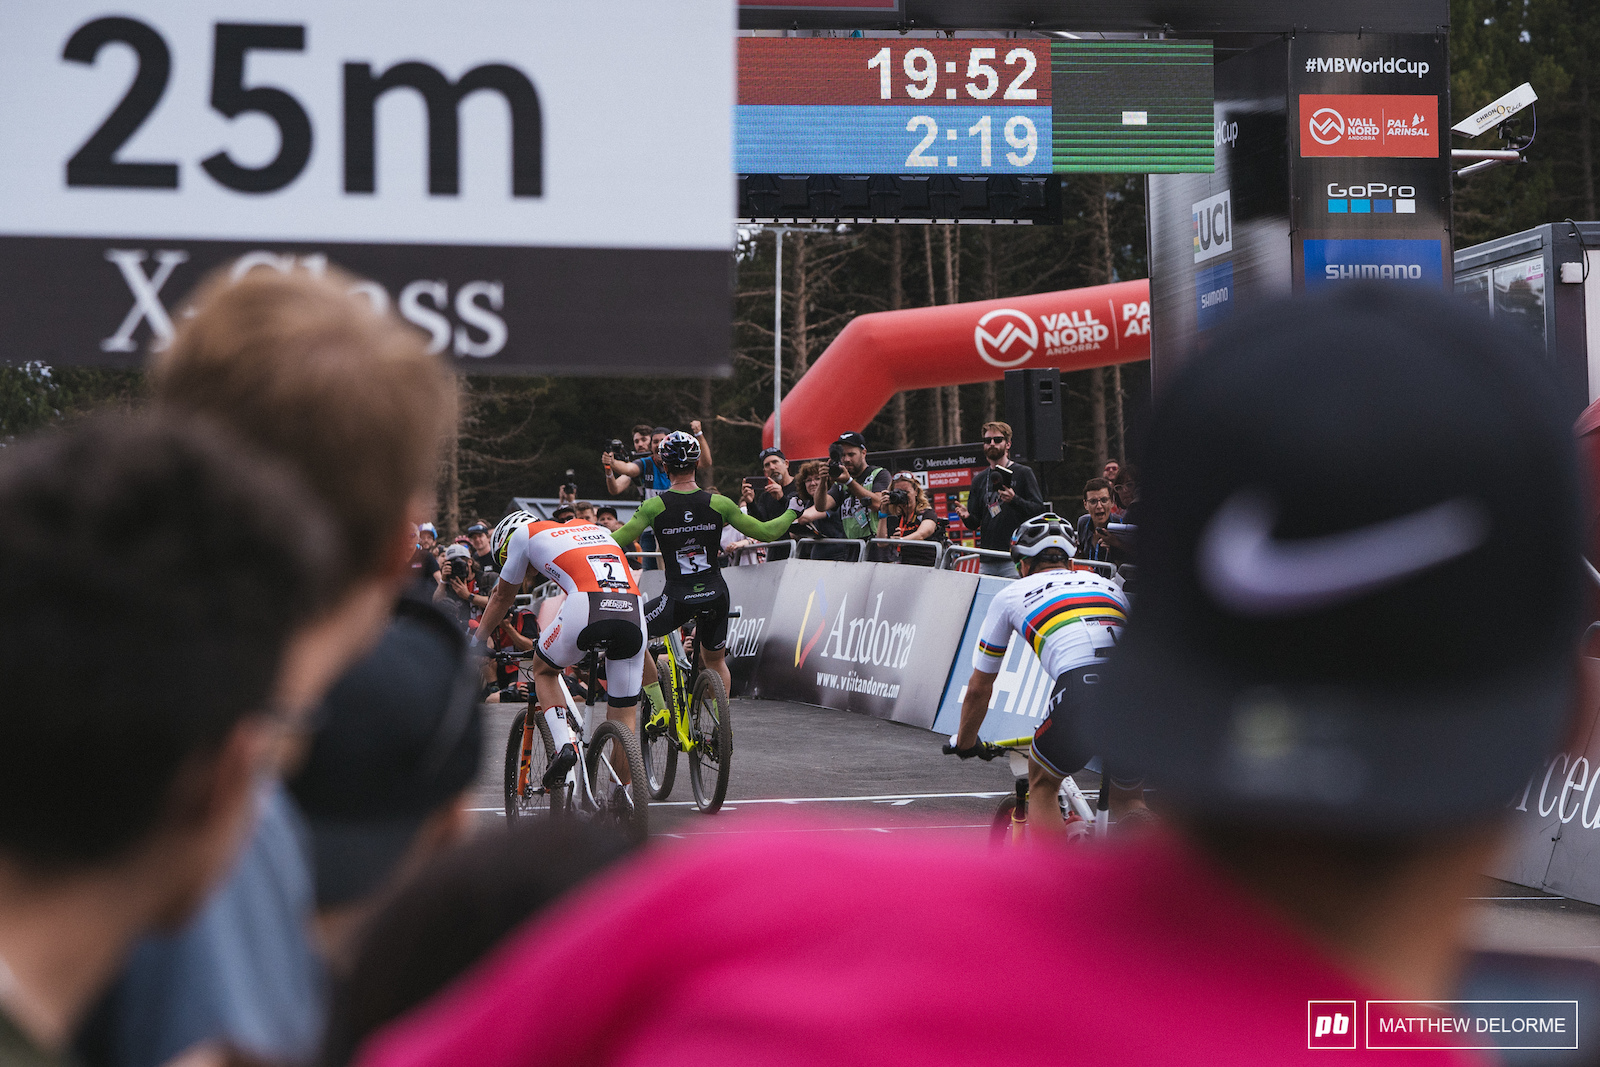 Avancini took his first STXC win in Andorra and the momentum followed him through to the rainbow stripes at Marathon Worlds.